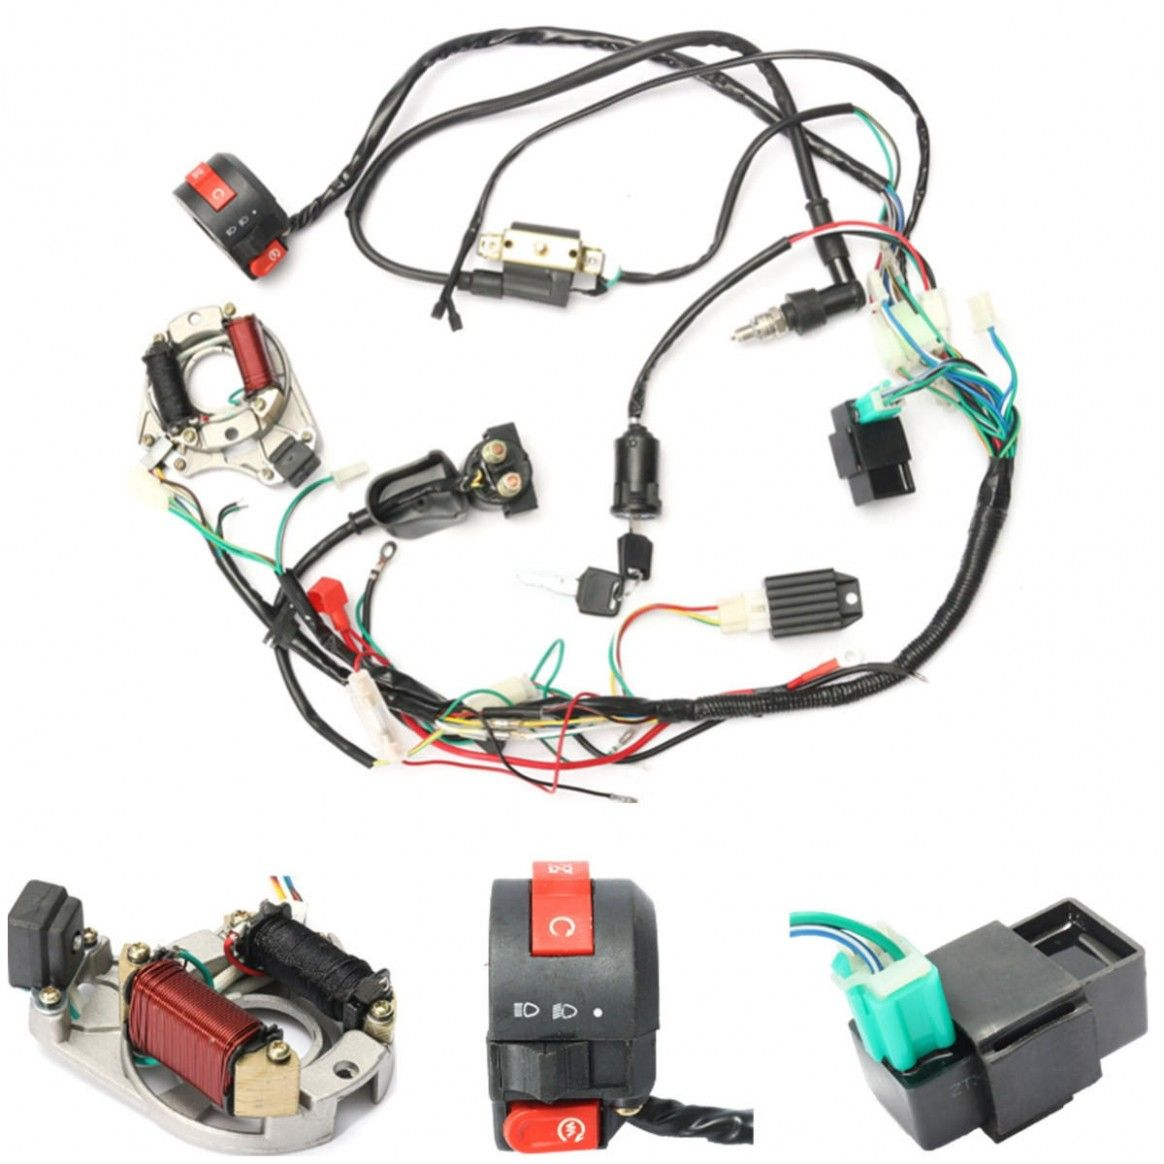 8cc Cdi Wire Harness Assembly Wiring Kit Atv Electric Start Quad Chinese 110cc Engine Diagram Image In 2020 Atv Quad 50cc